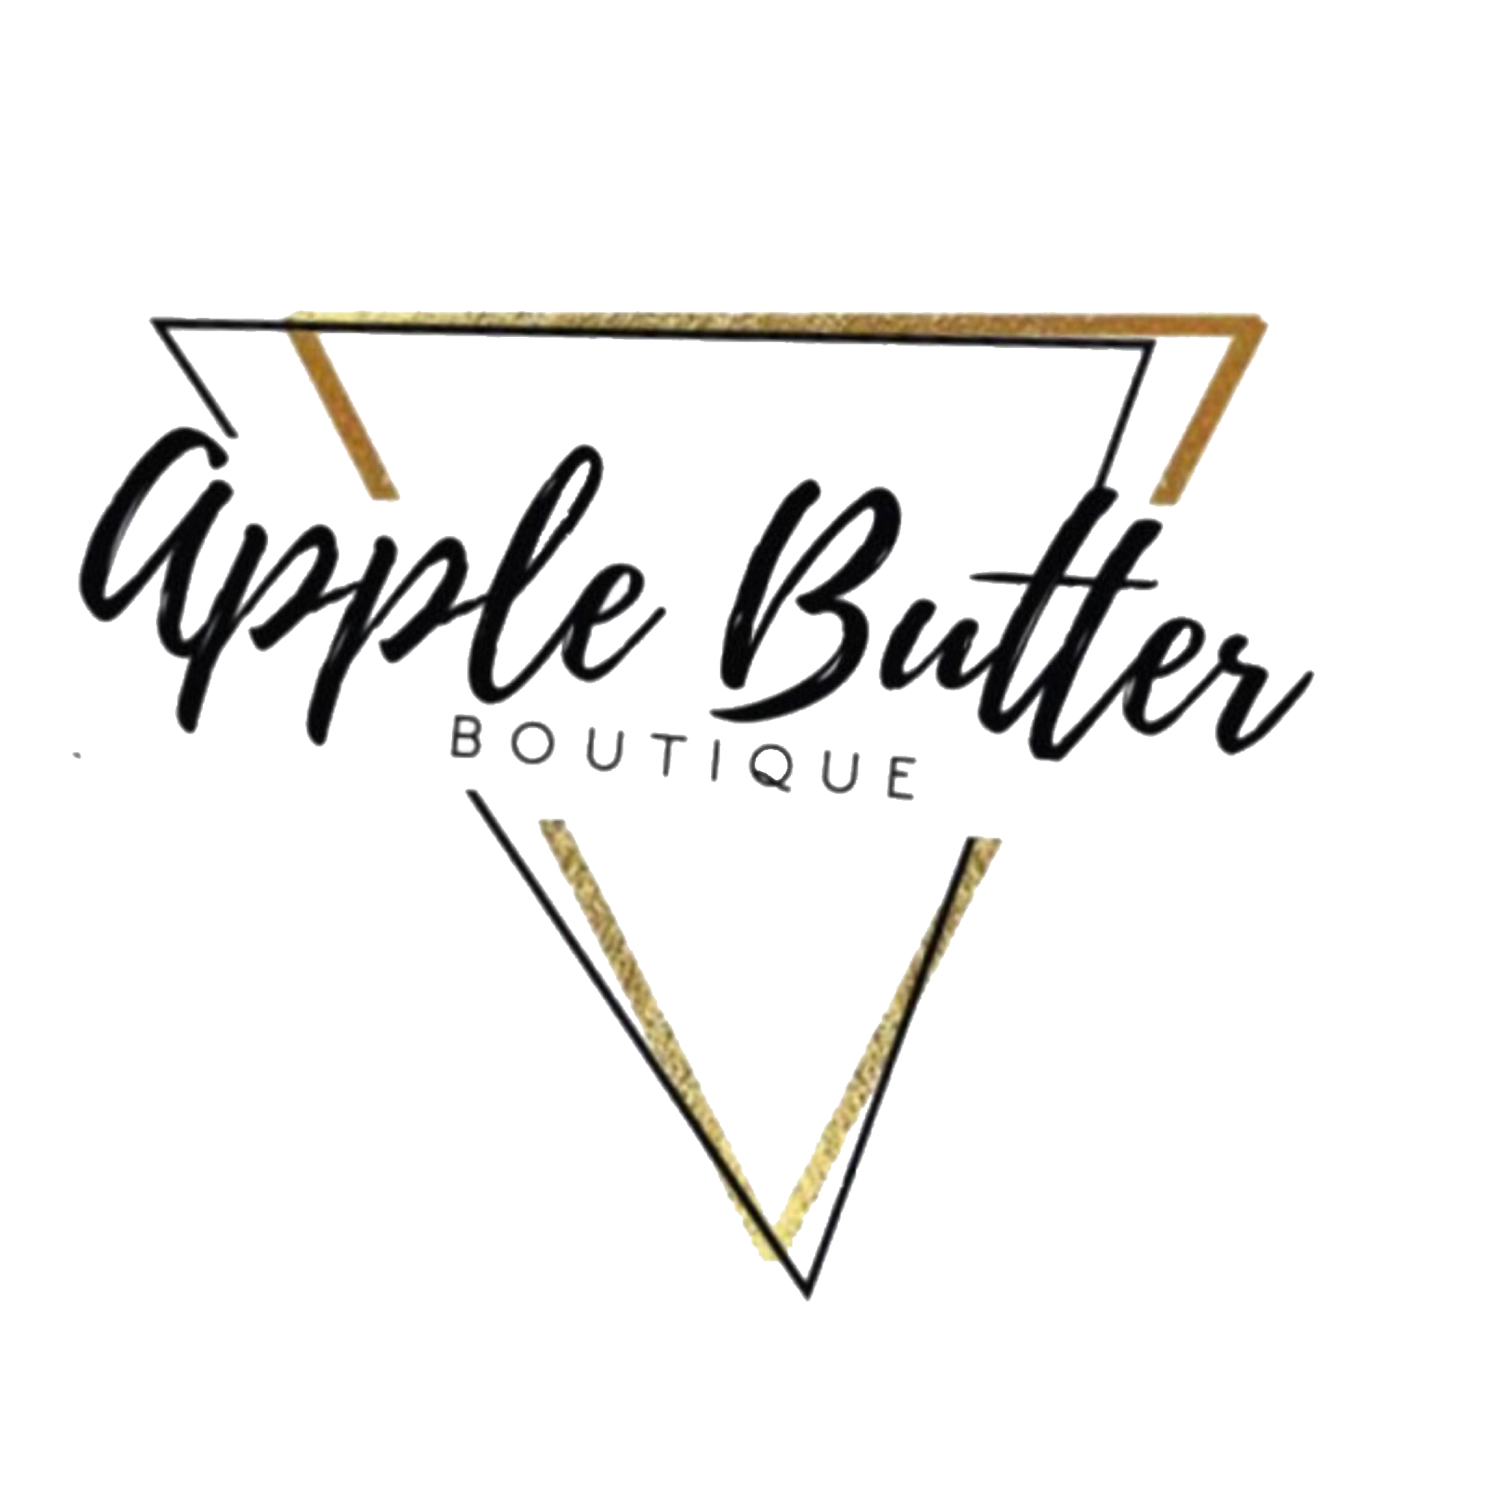 Λpple Butter Boutique